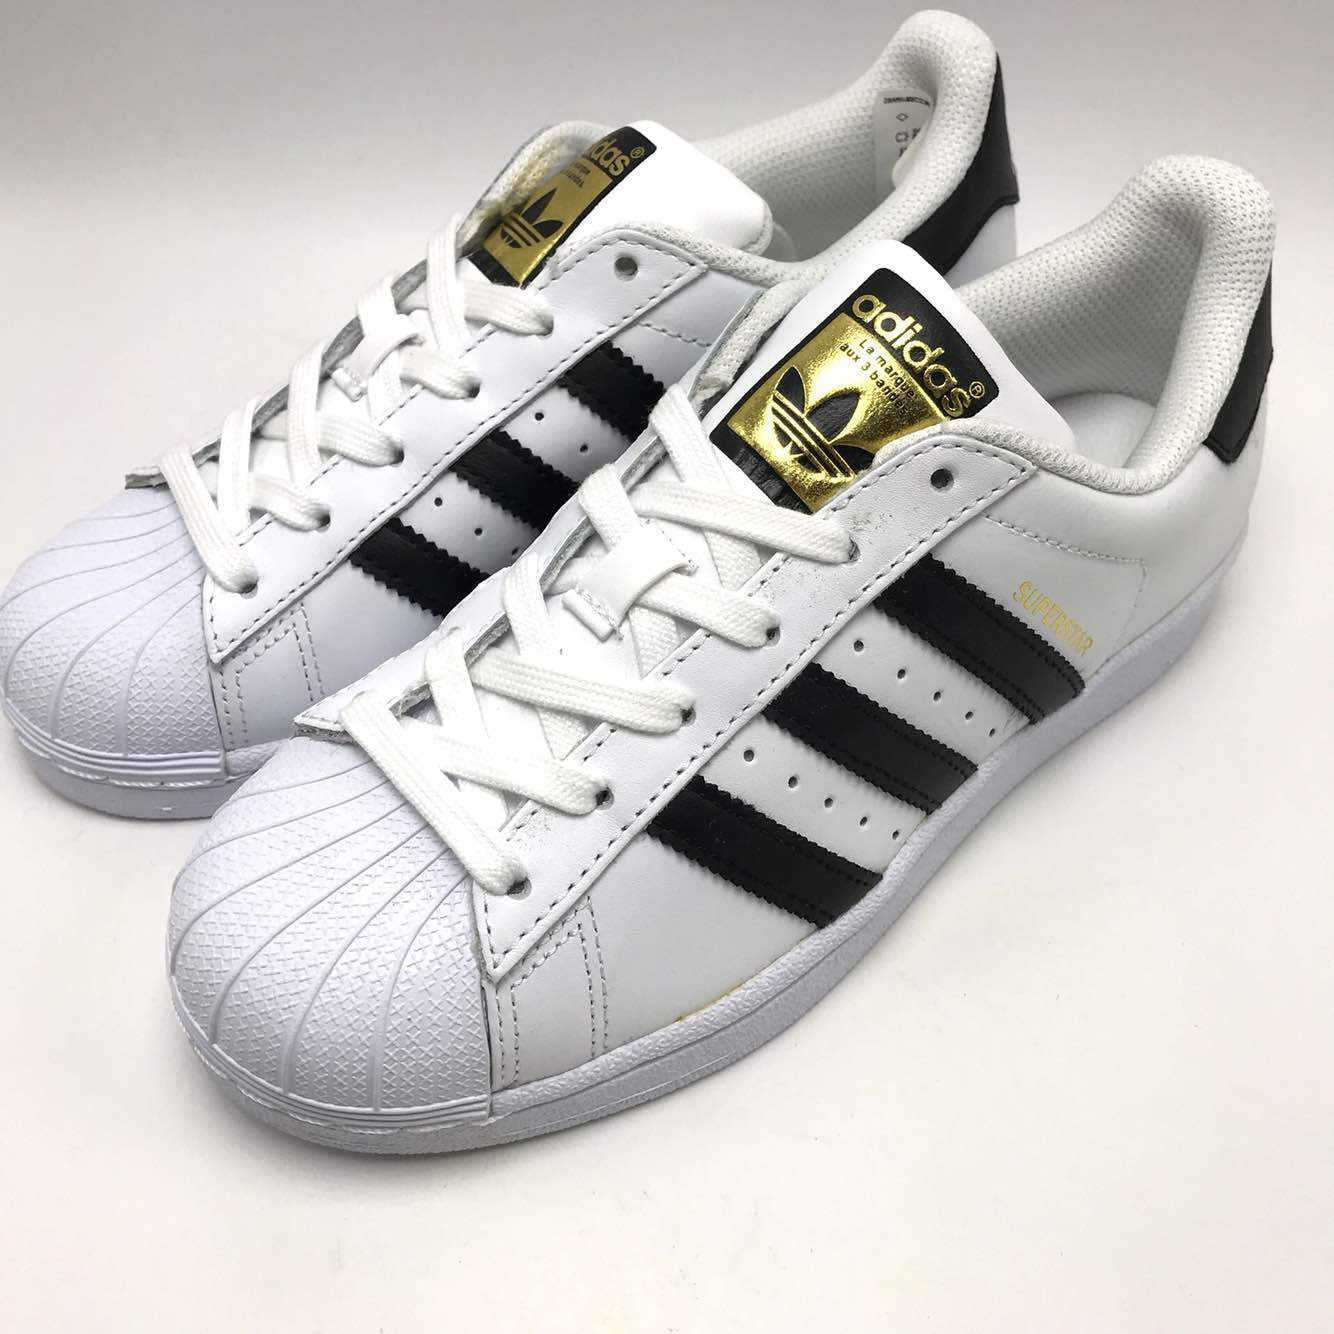 Adidas Originals Women's Superstar White/Black C77153 Women's size 4.5-10